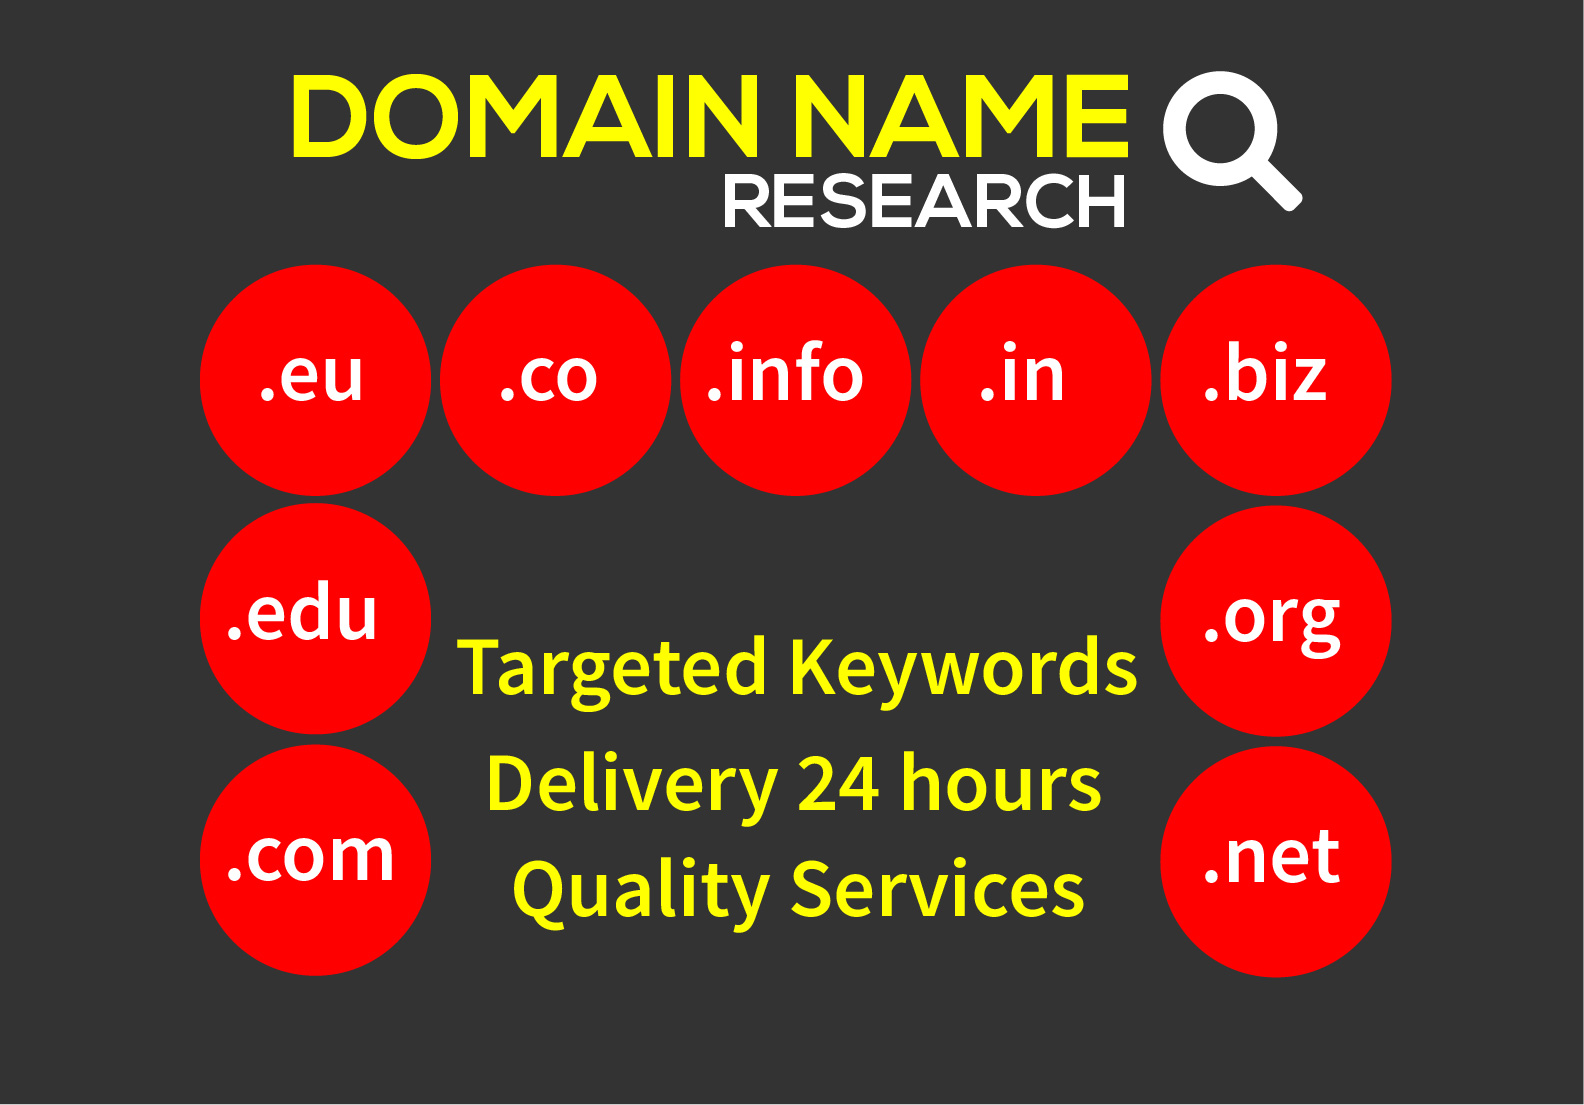 I will research and find Attractive Domain Name for your business or company